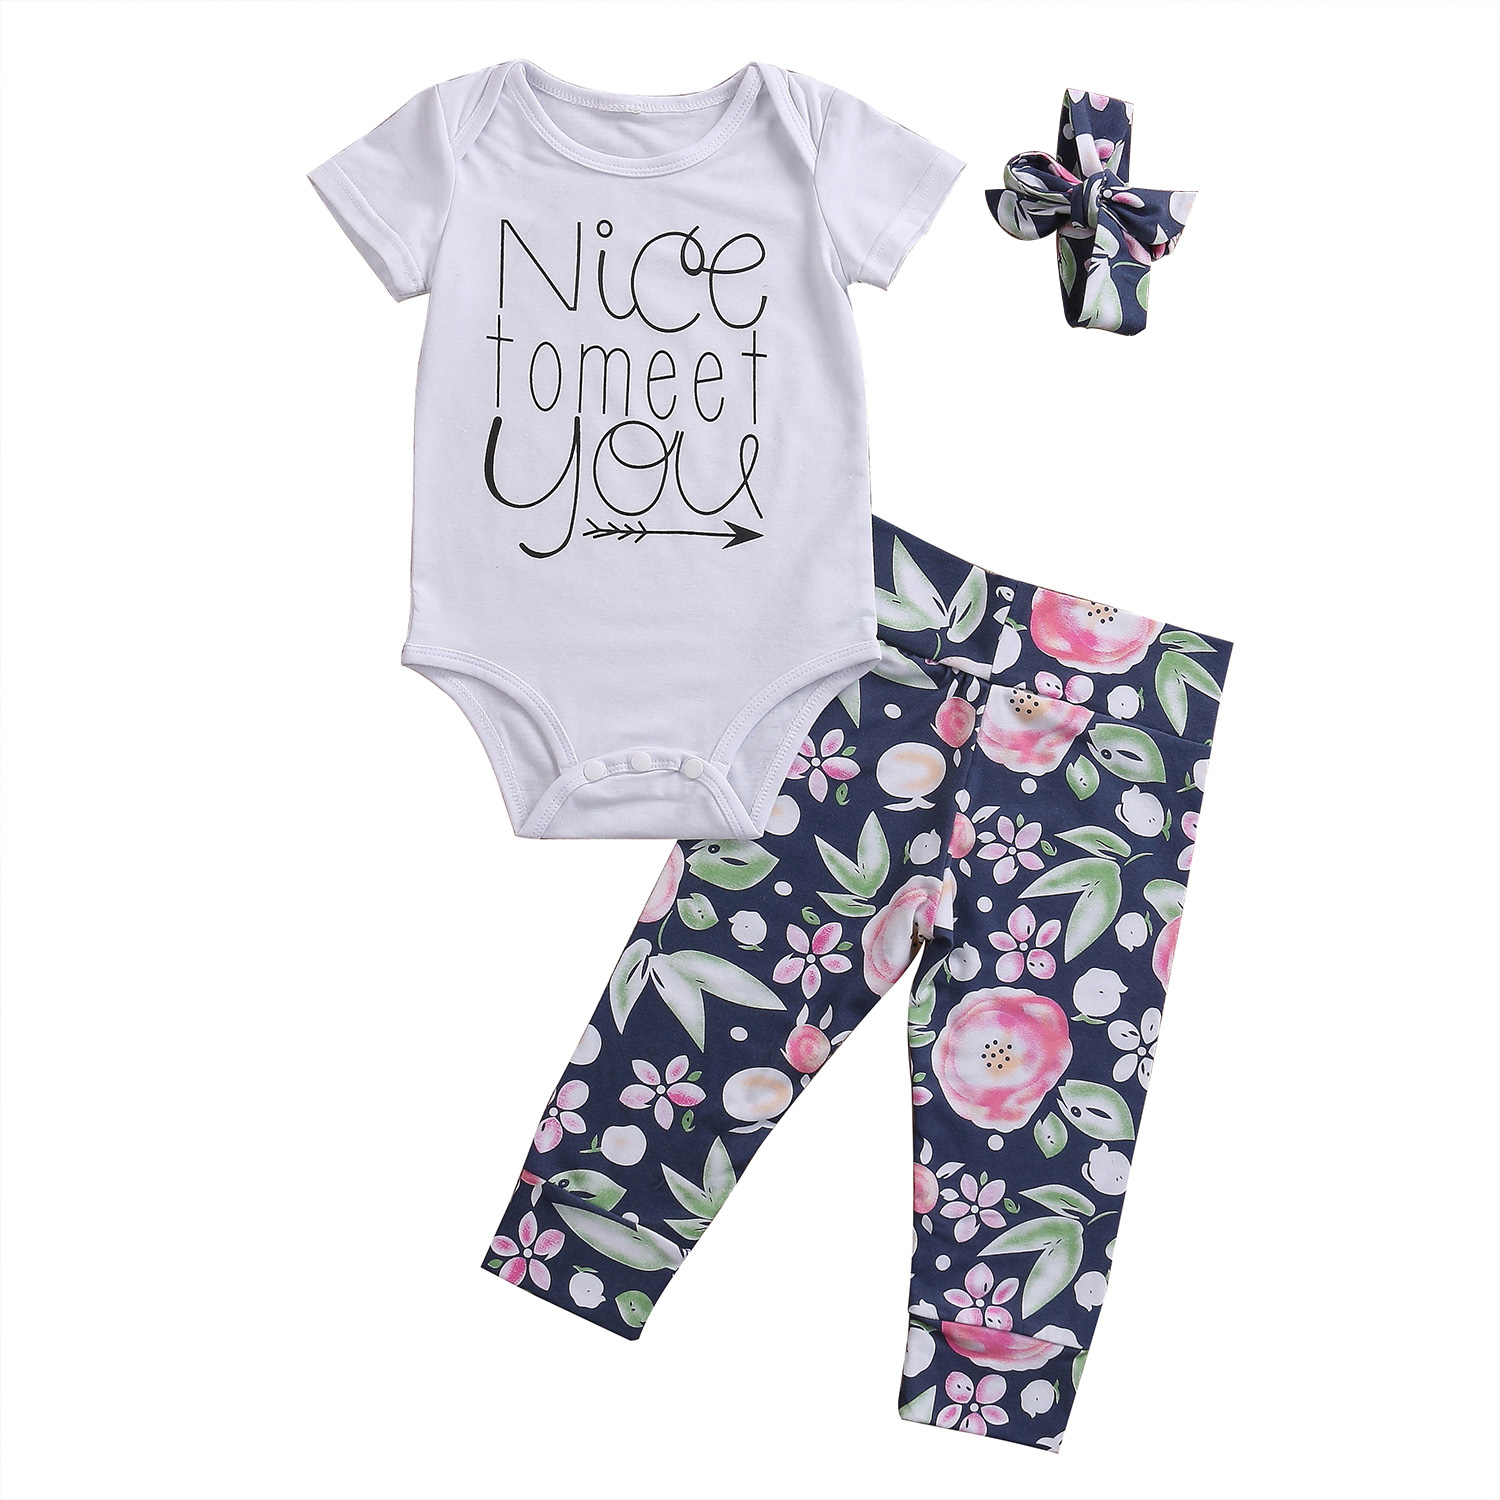 20d203b98 2019 Emmababy Cute Hot Casual Infant Baby Girls Floral Romper ...